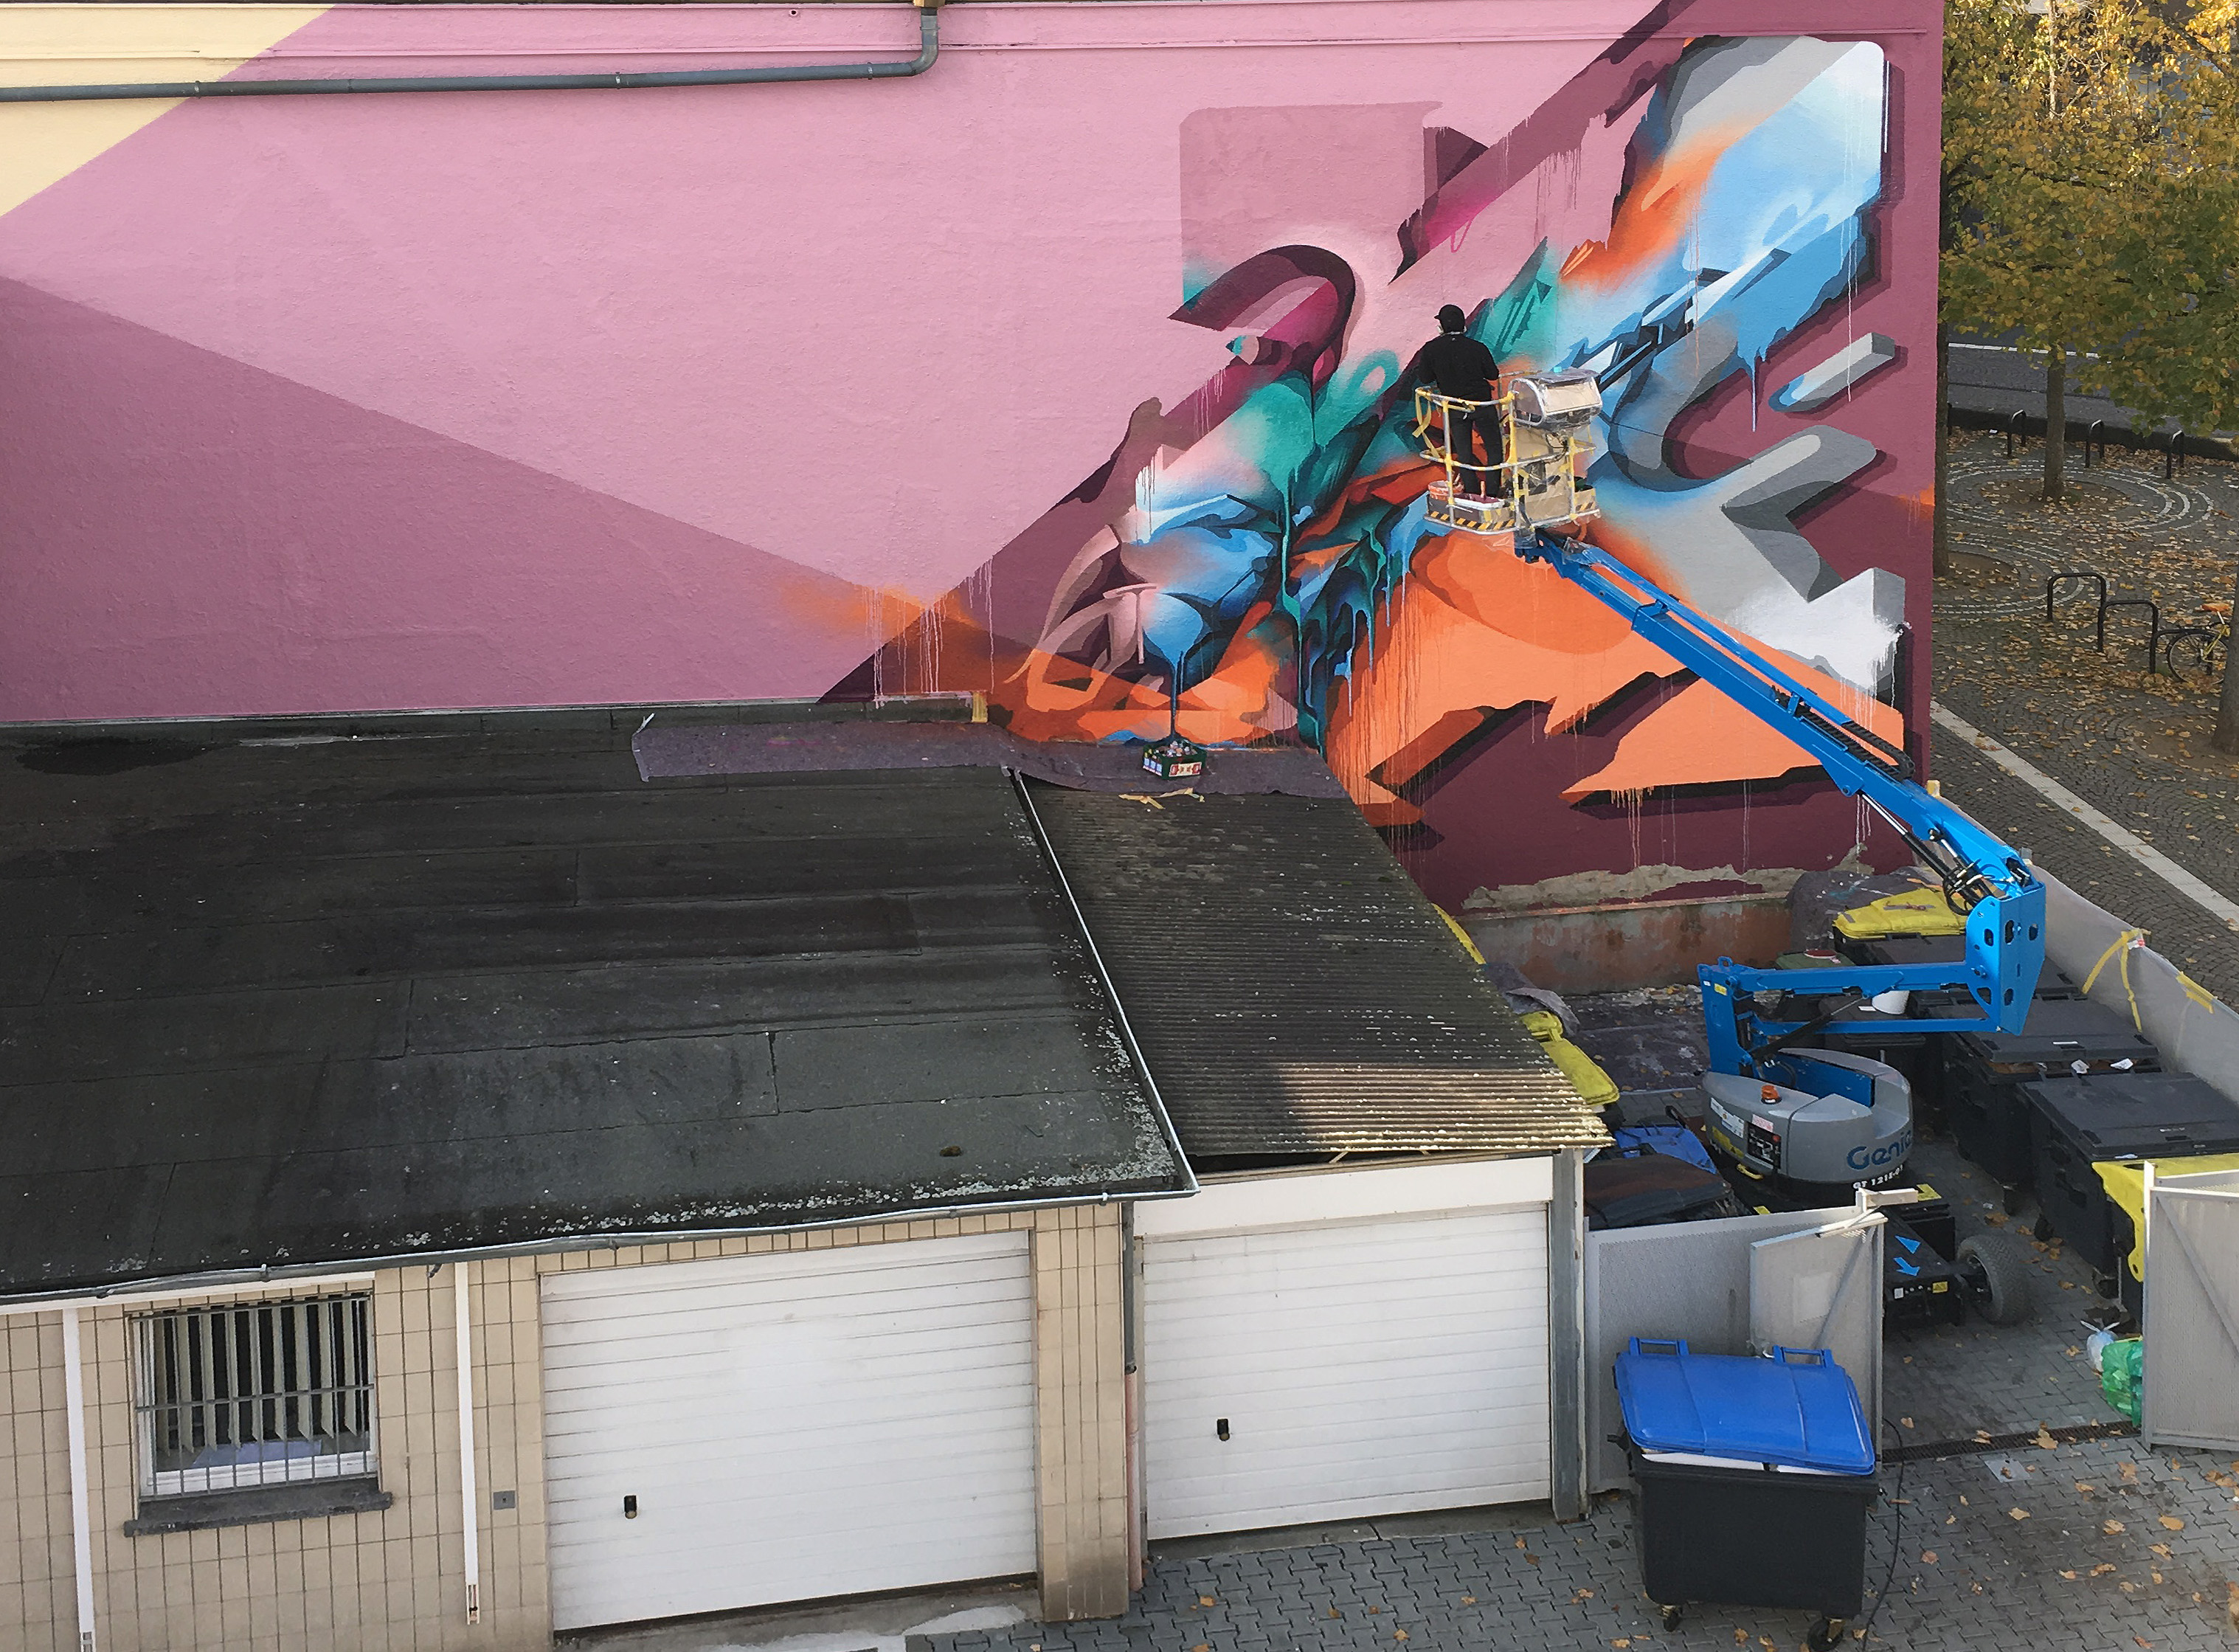 A work by Does - River tales giessen germany mural 5